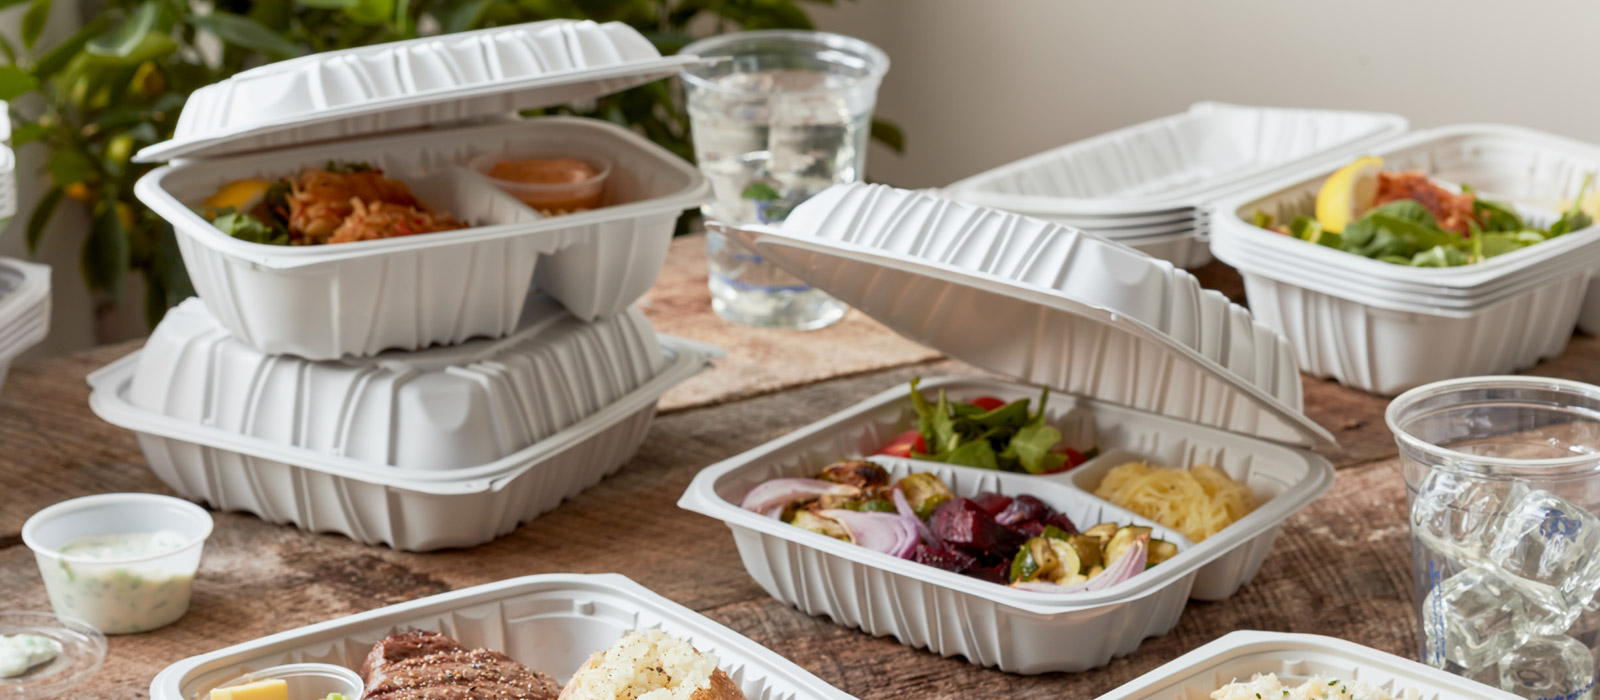 EARTHCHOICE MFPP HINGED LID CONTAINERS